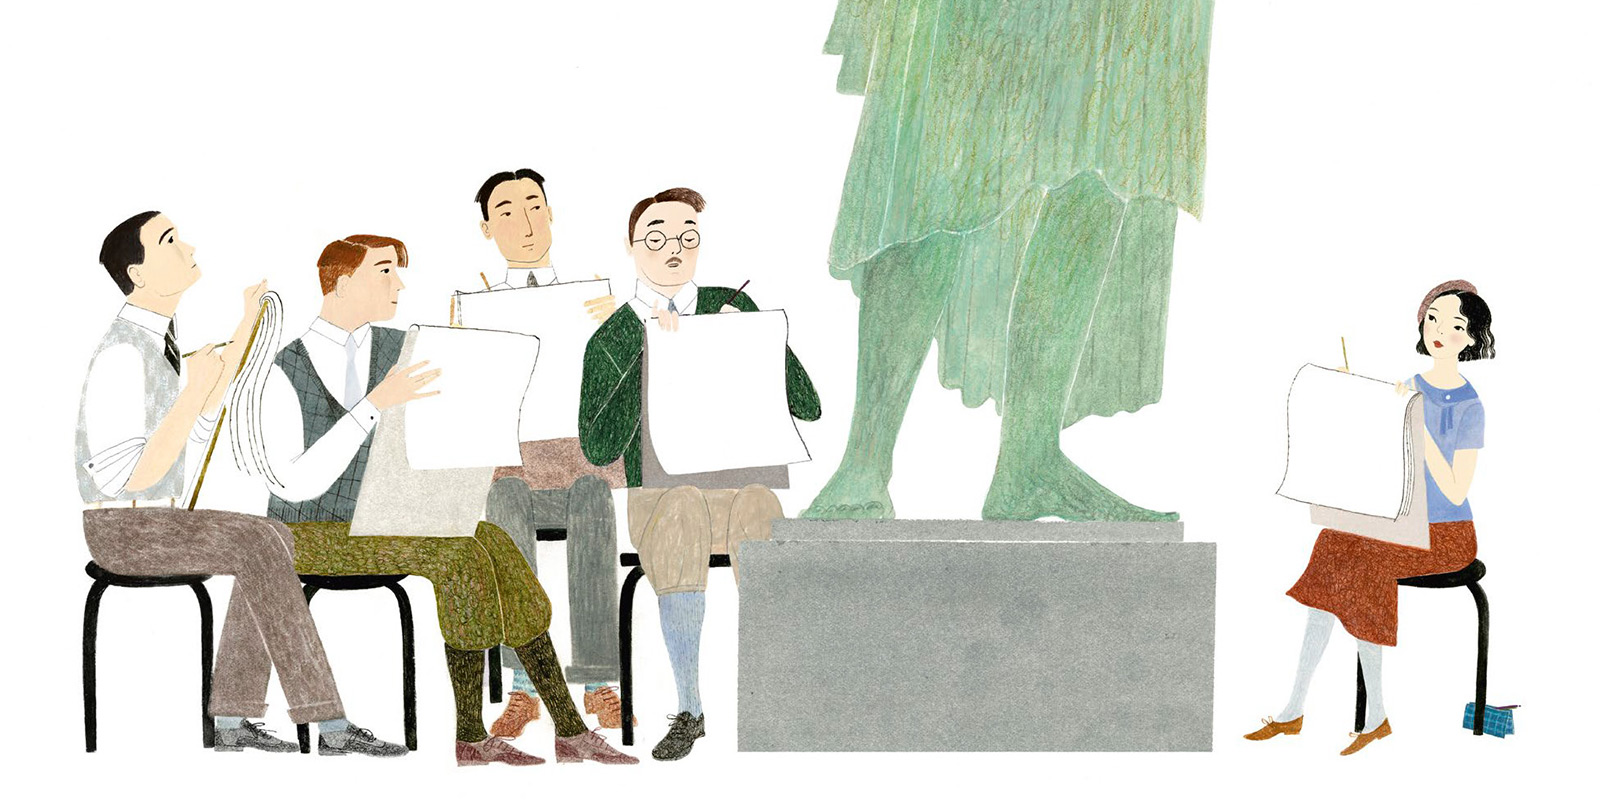 Illustration depicting Gyo Fujikawa at the foot of a statue in an art class. She is sitting apart from a group of male art students. They all have sketch pads and are drawing the statue.